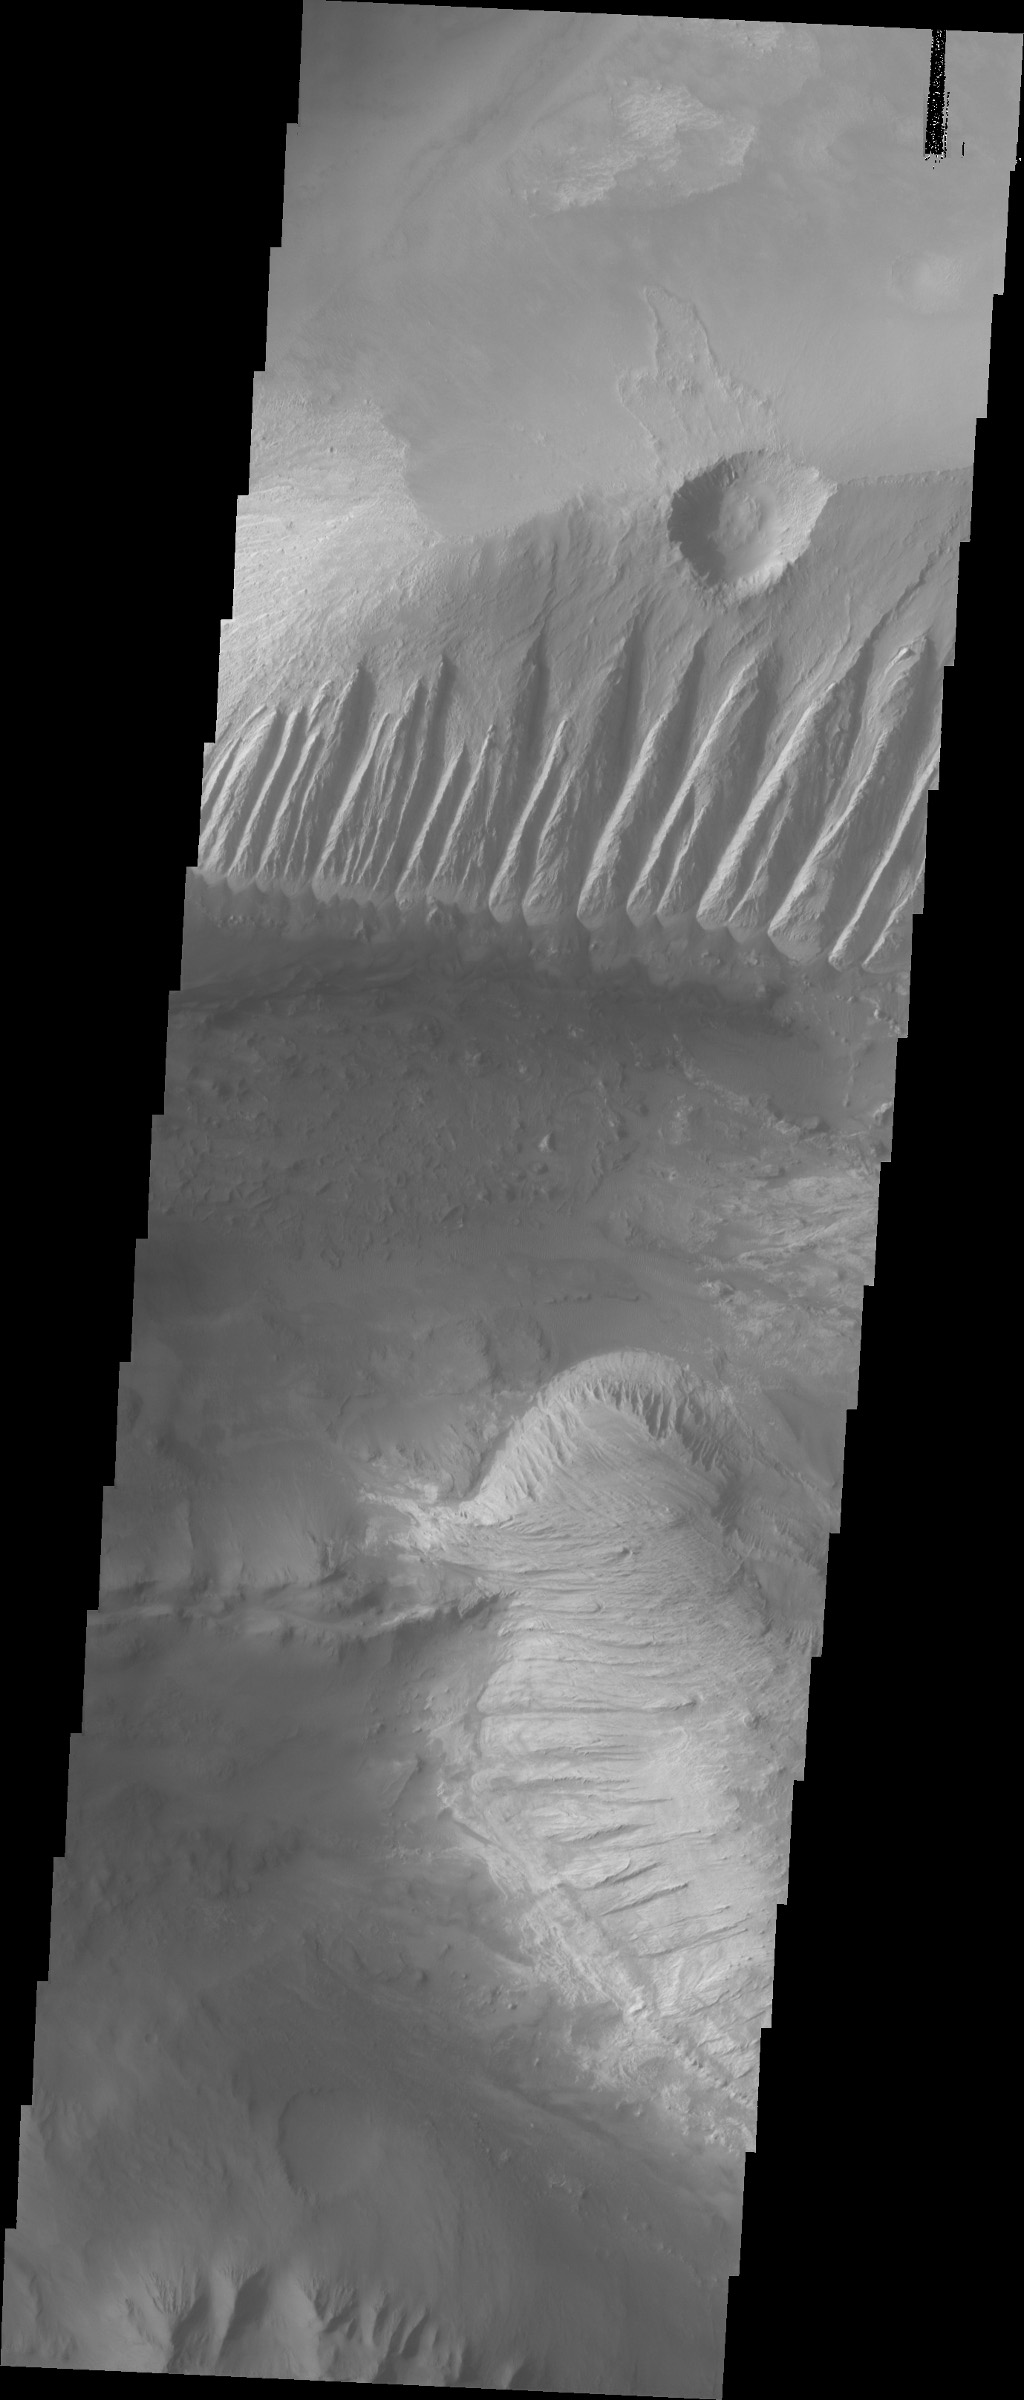 This image captured by NASA's 2001 Mars Odyssey spacecraft shows part of eastern Candor Chasma. In the middle of the image is a set of linear ridges and valleys.